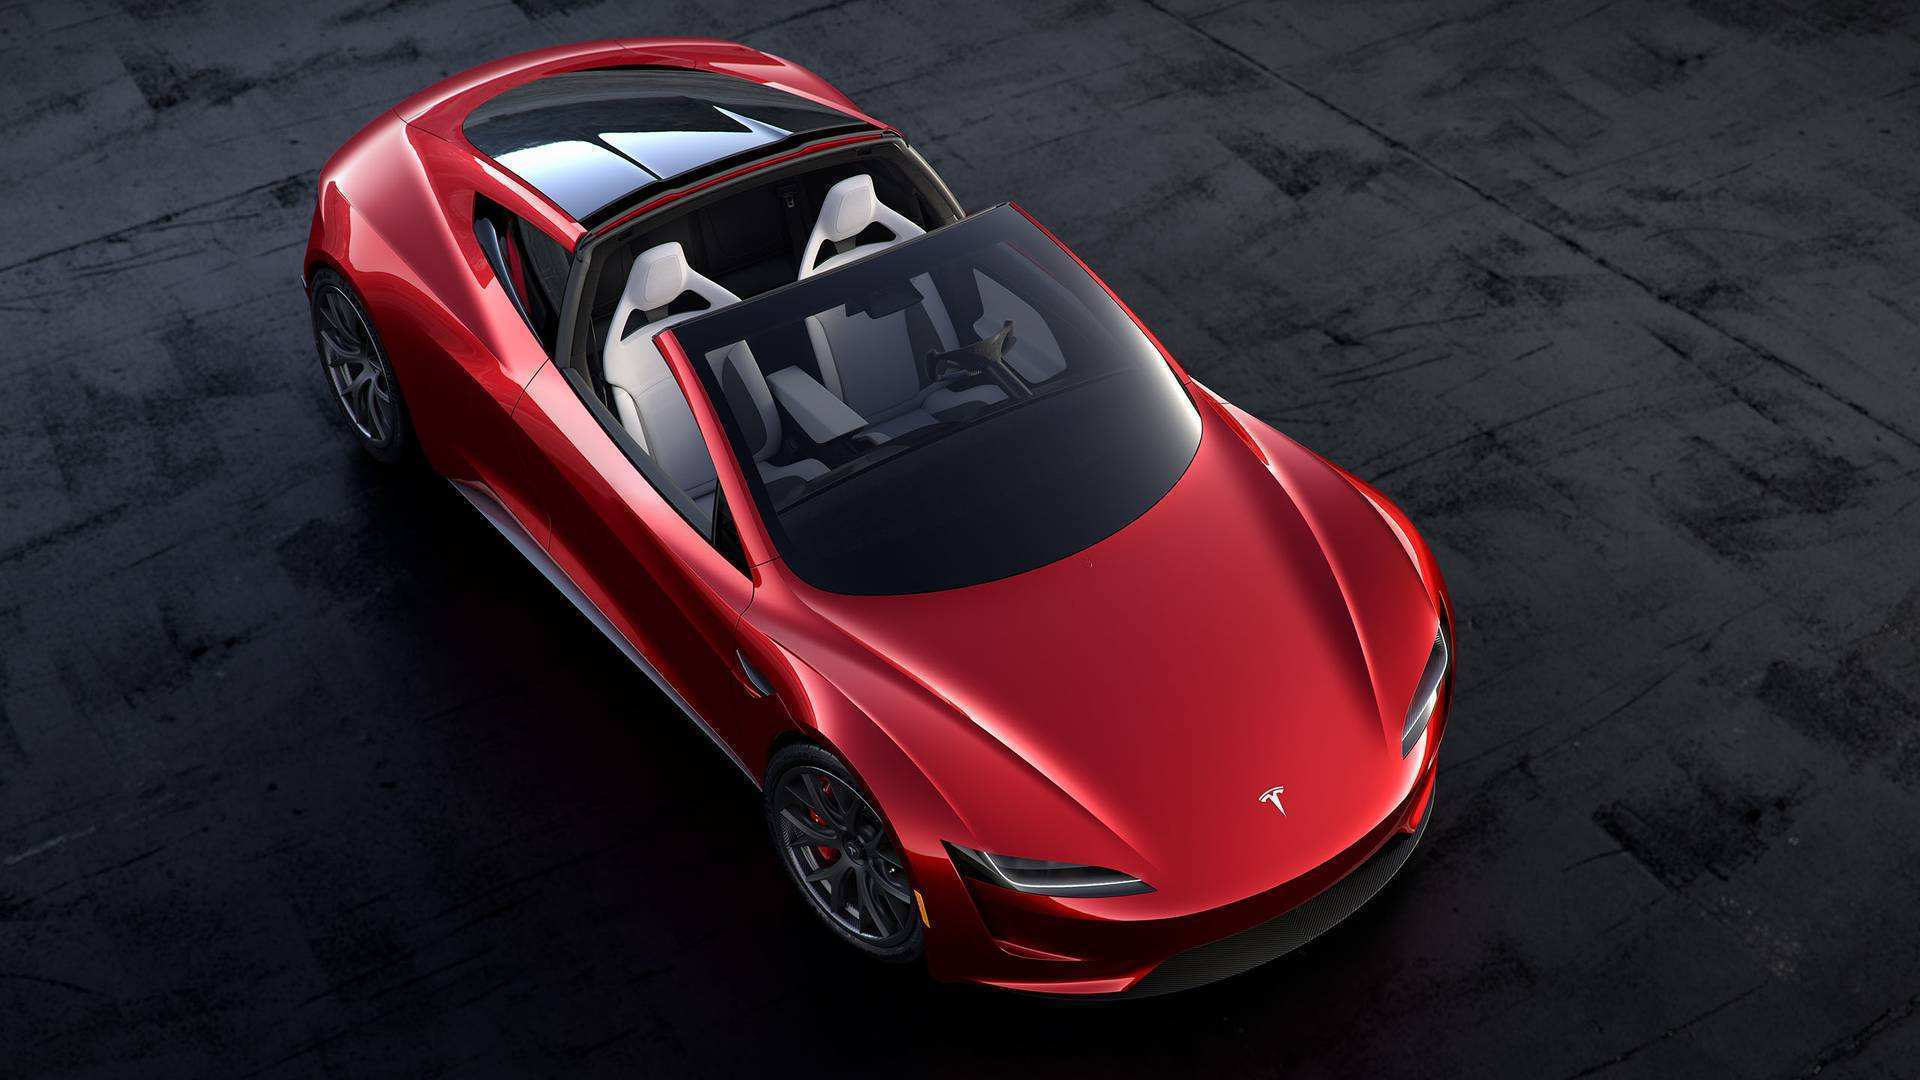 16 Gallery of 2020 Tesla Roadster Weight 3 Pictures with 2020 Tesla Roadster Weight 3